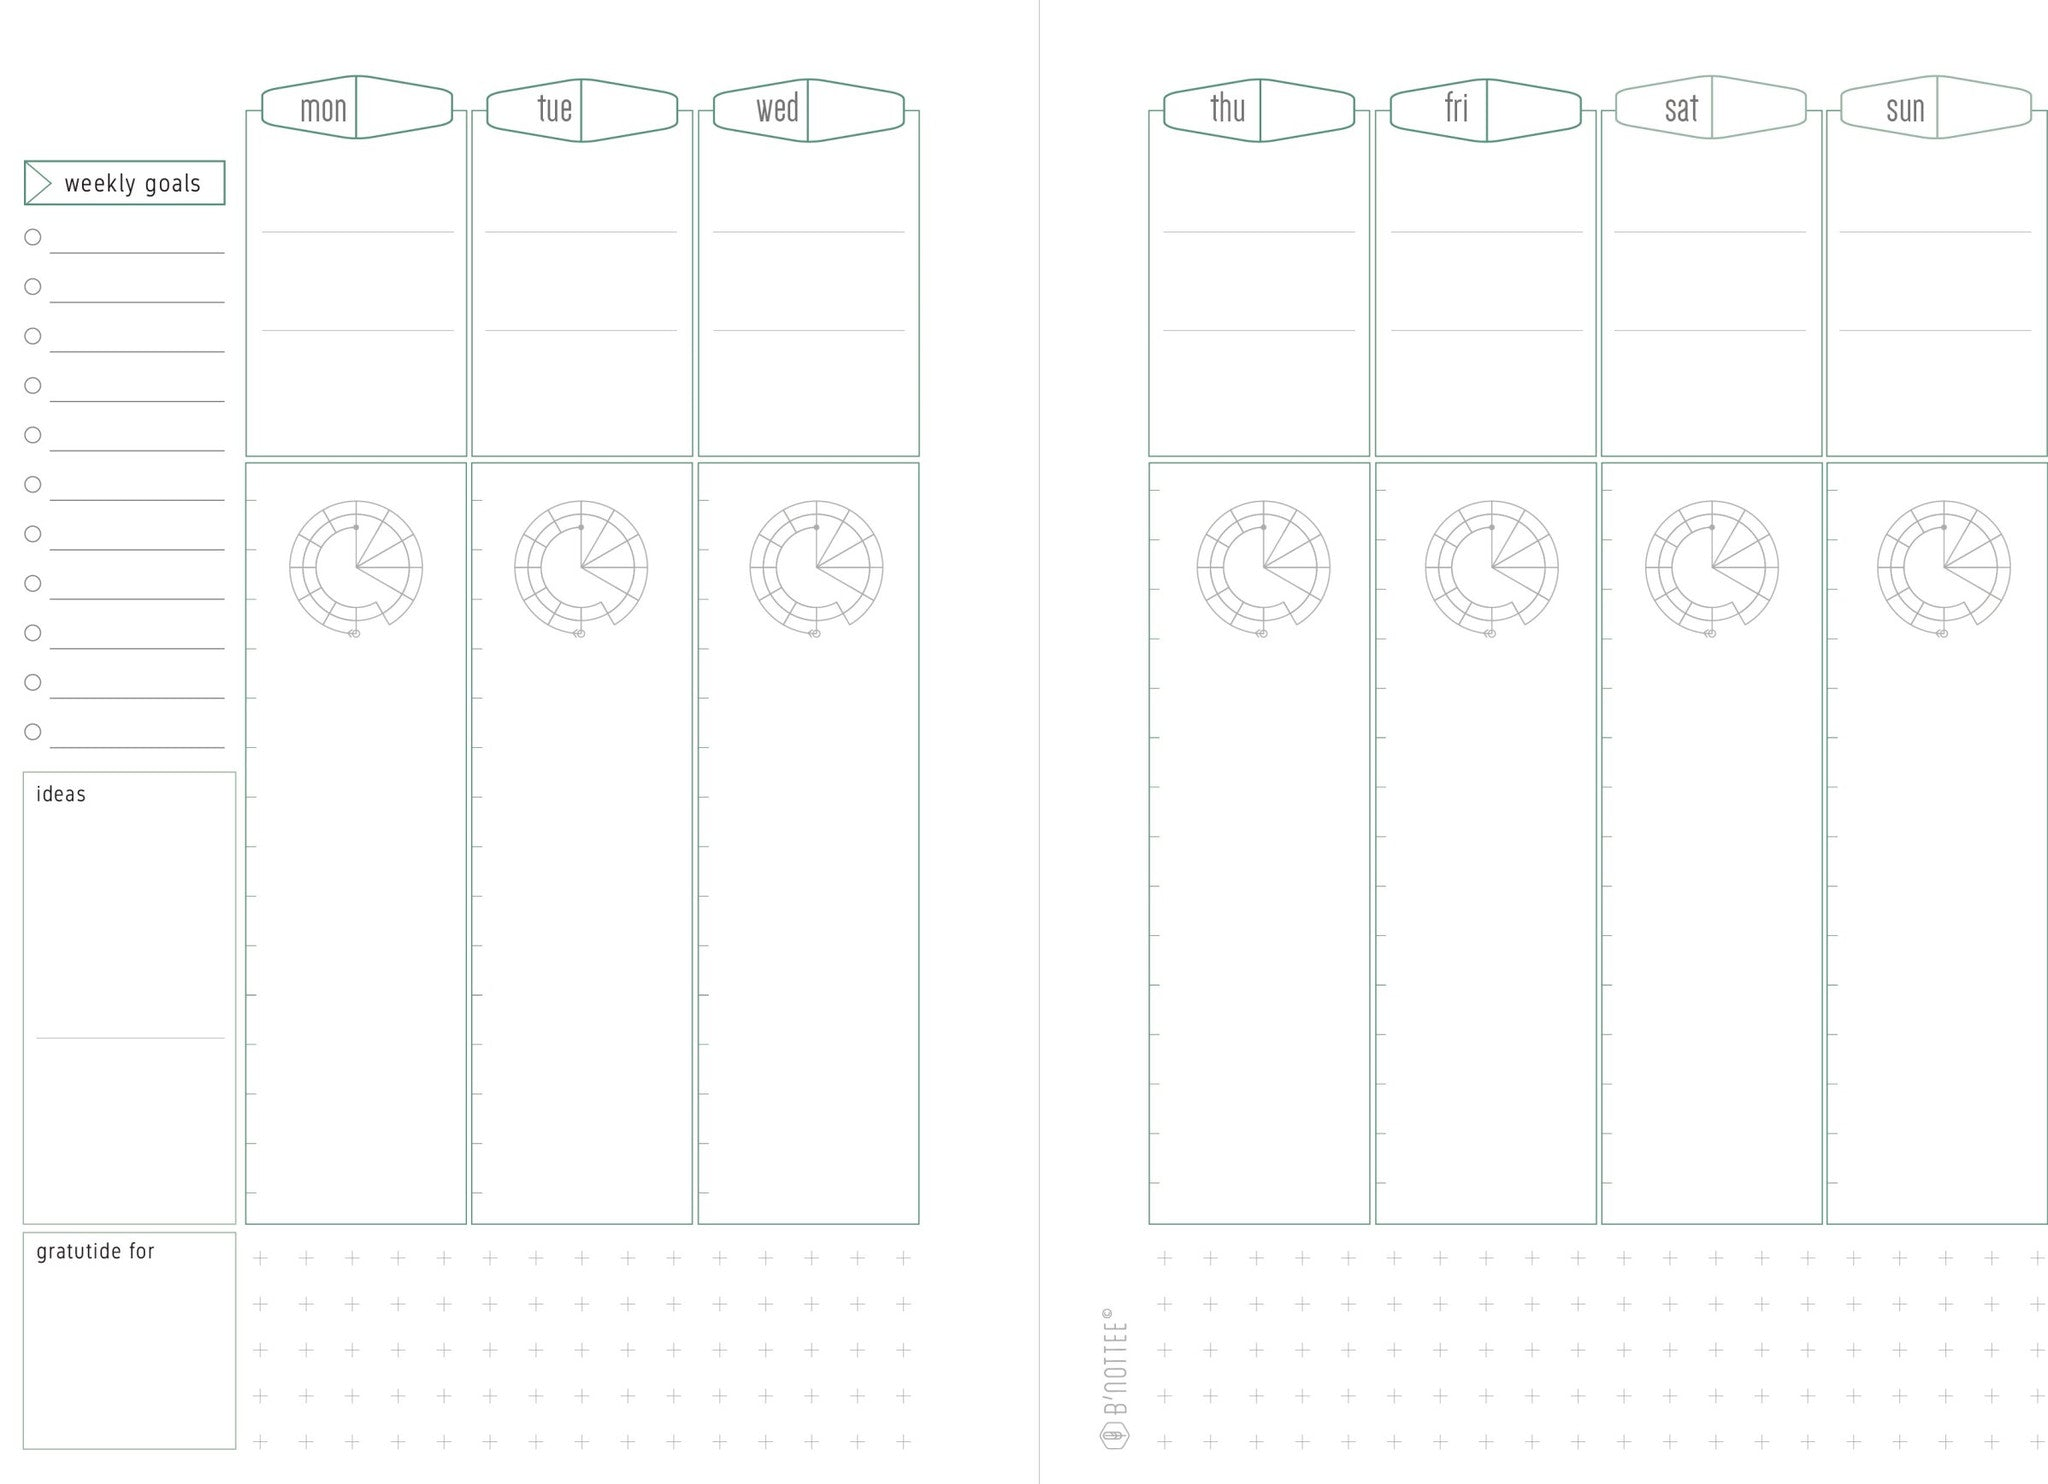 photo about Free A5 Planner Printables called Free of charge Weekly A5 Planner Printable - Nottee 3.0 - BNottee